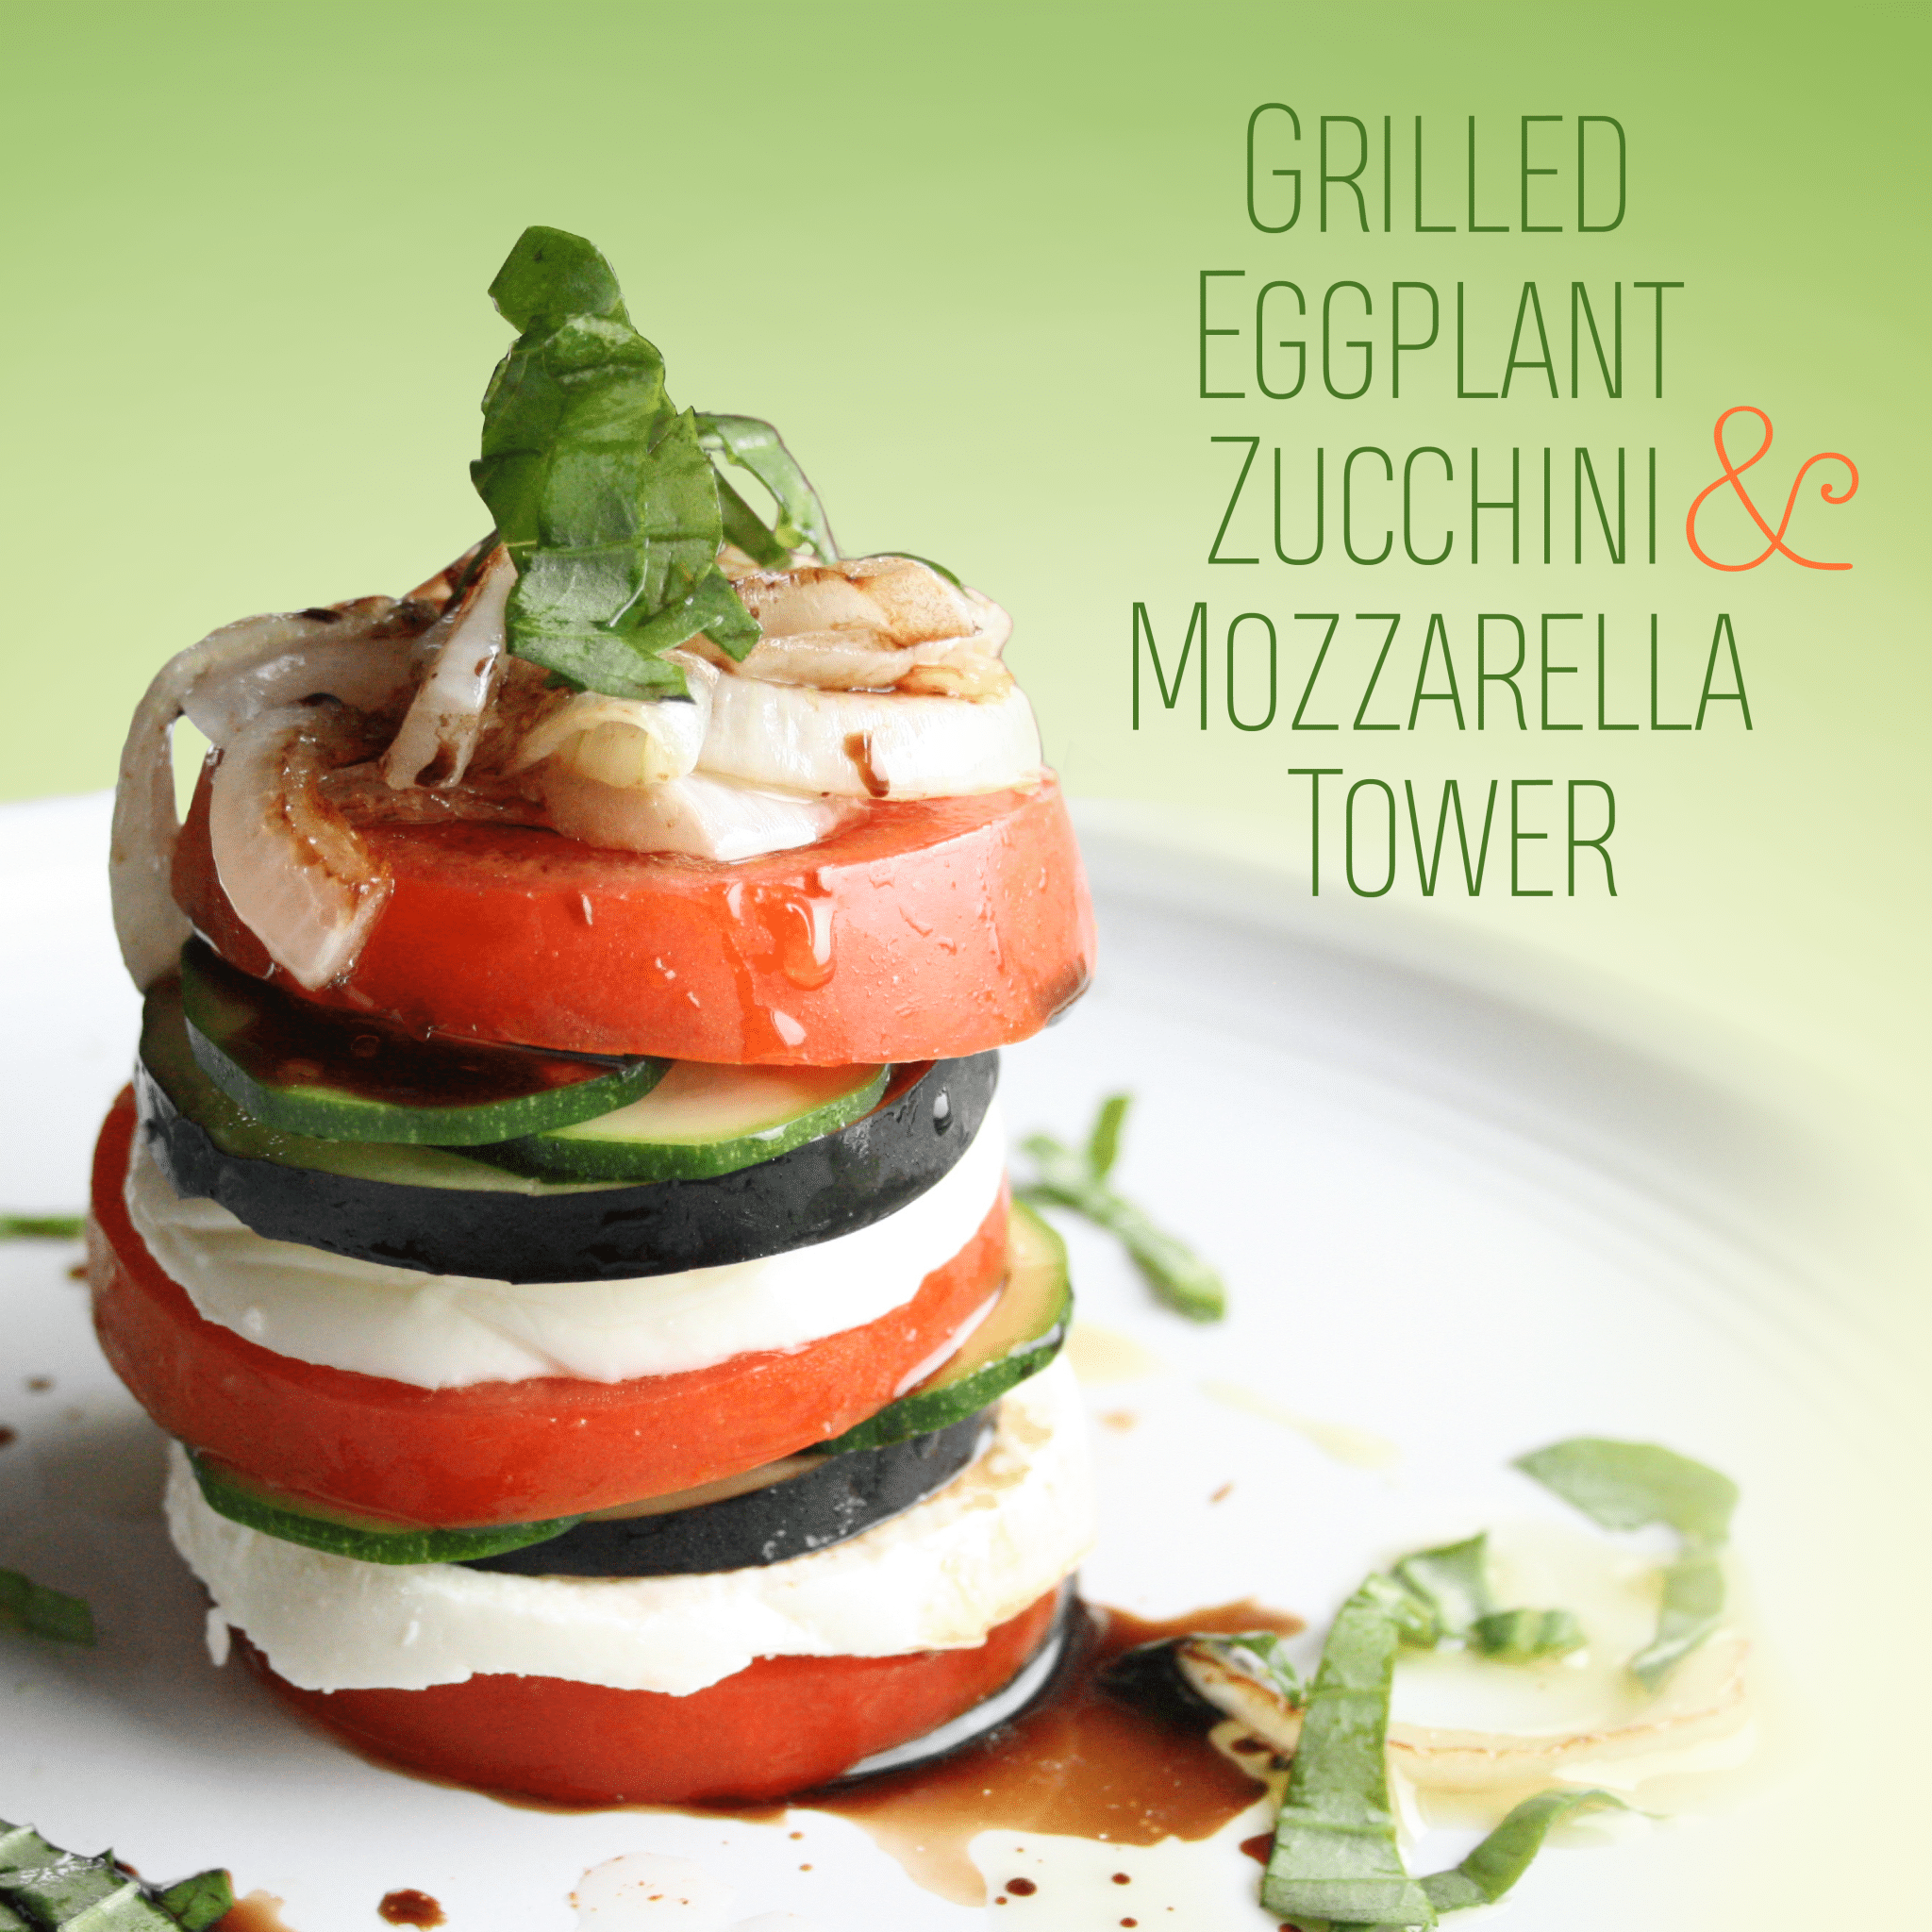 Grilled Eggplant, Zucchini, and Tomato Tower